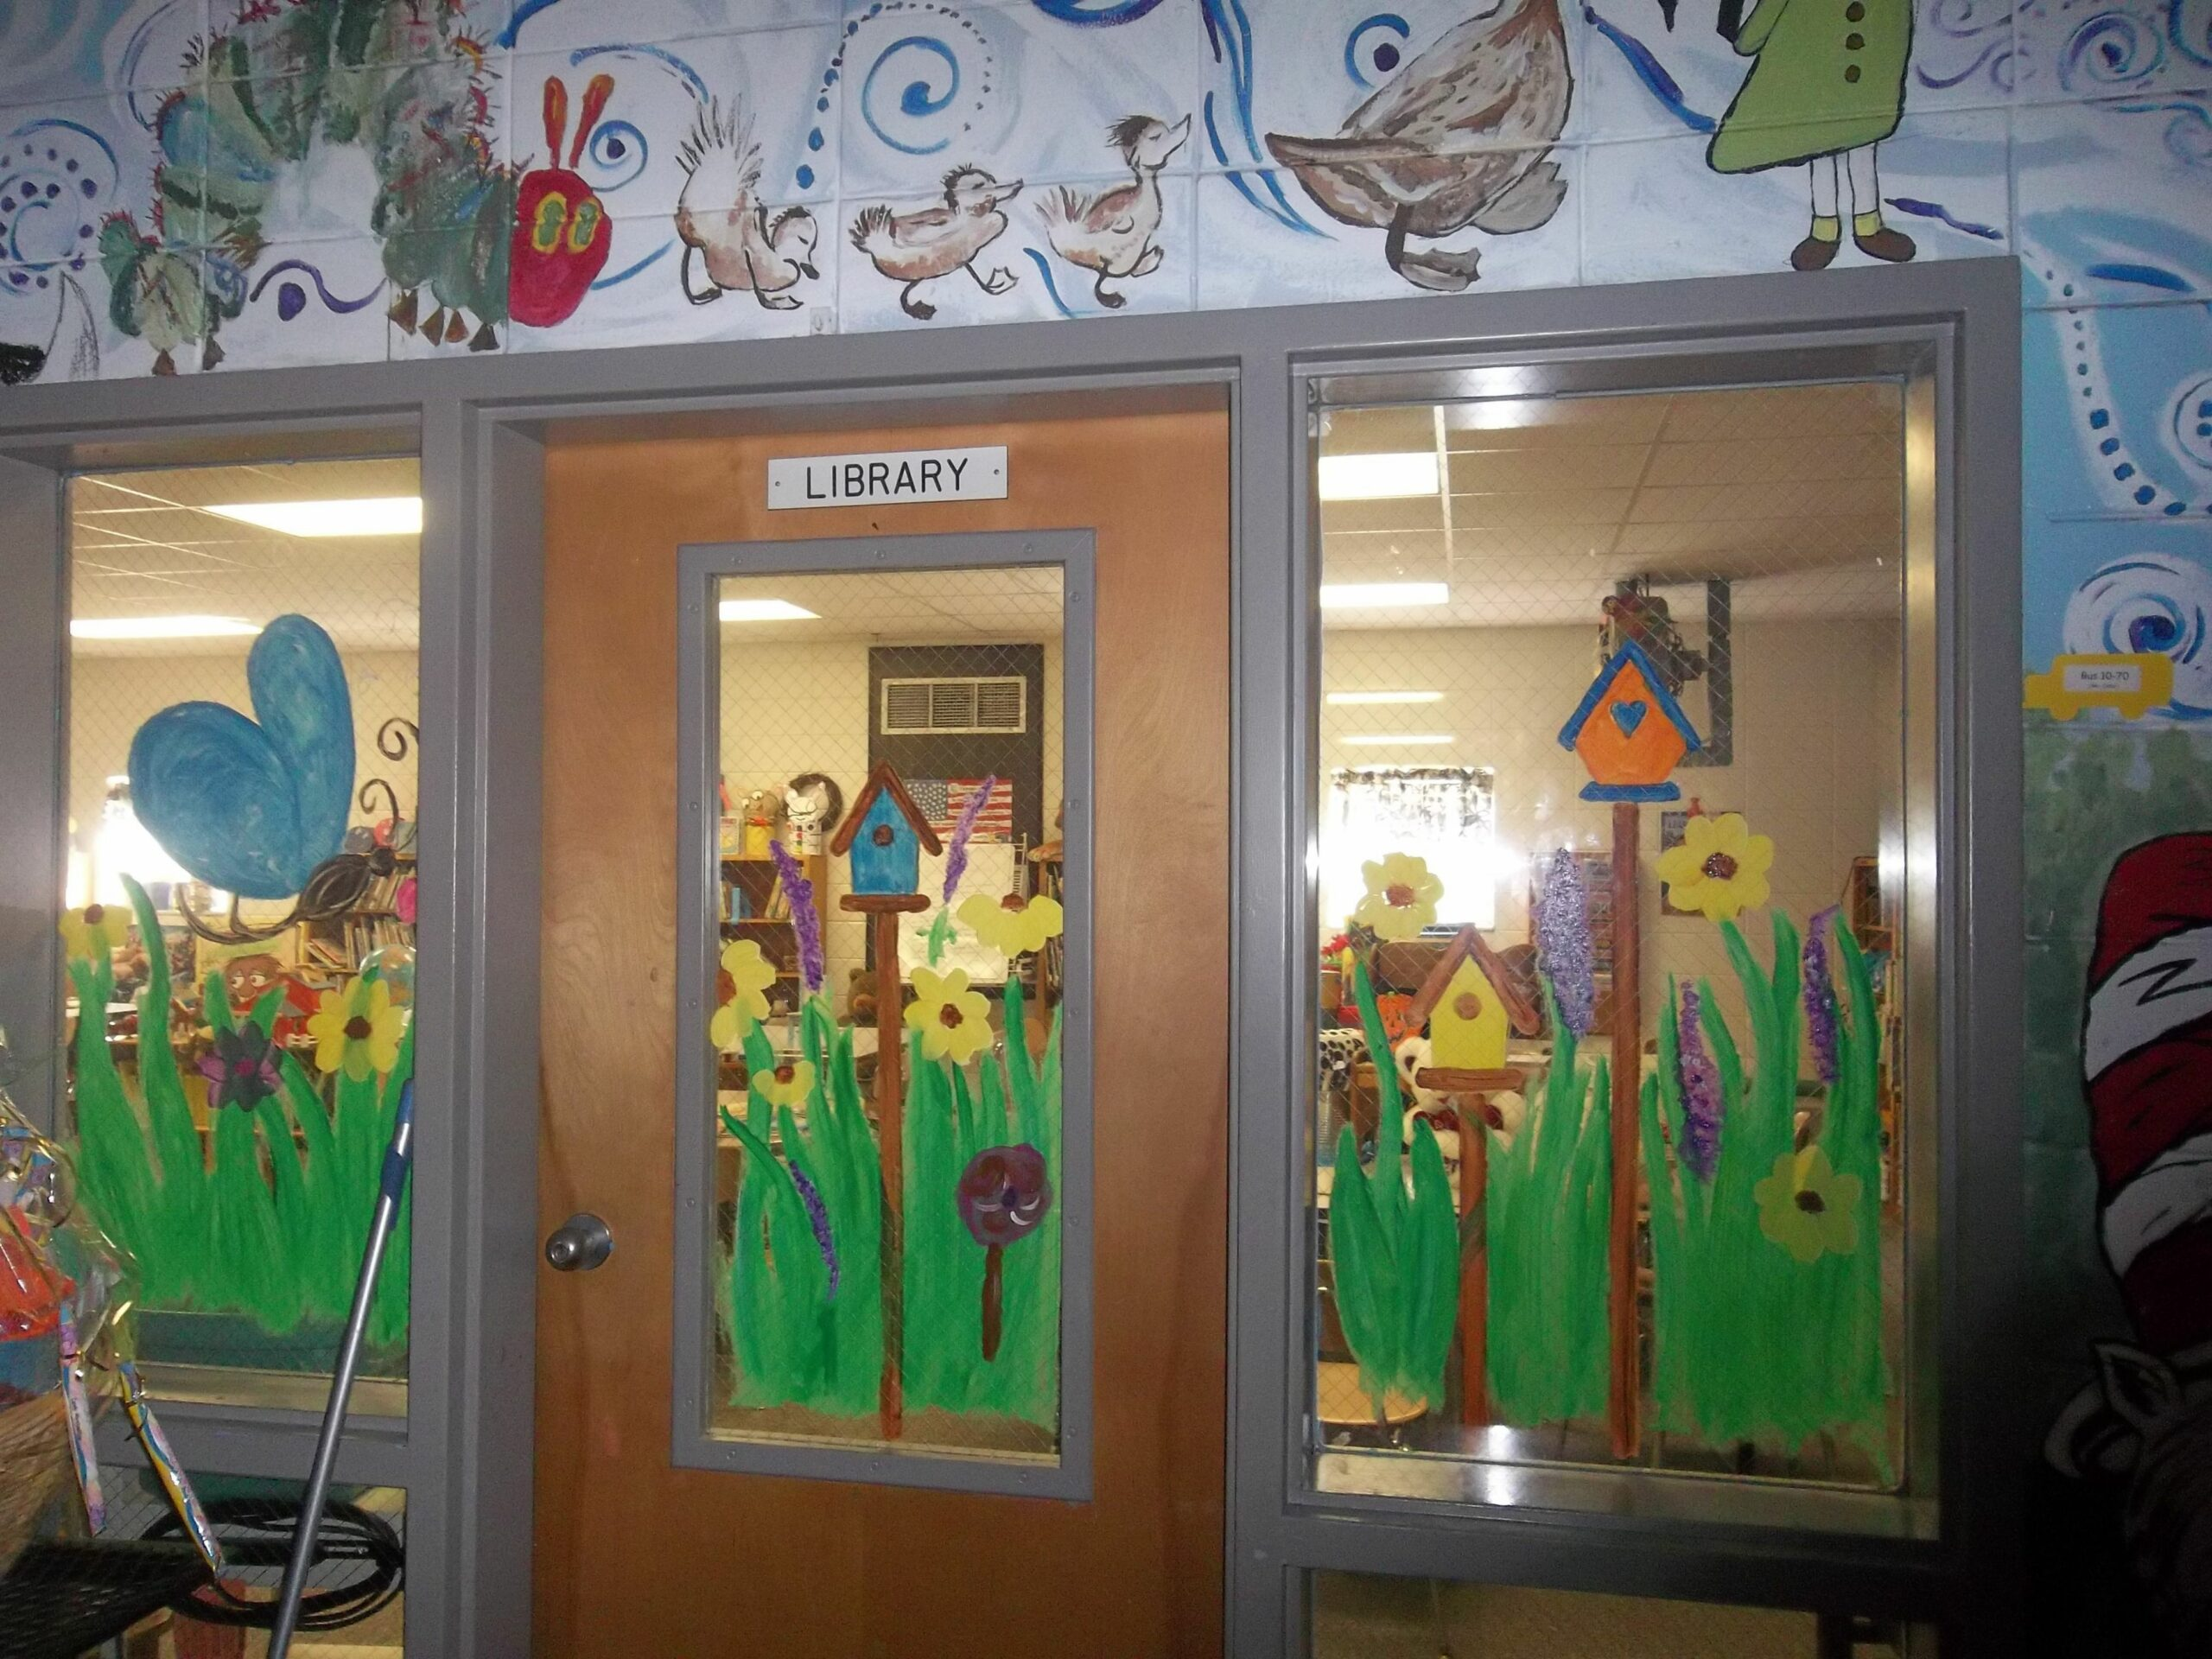 spring window painting ideas - Google Search   Window mural ..